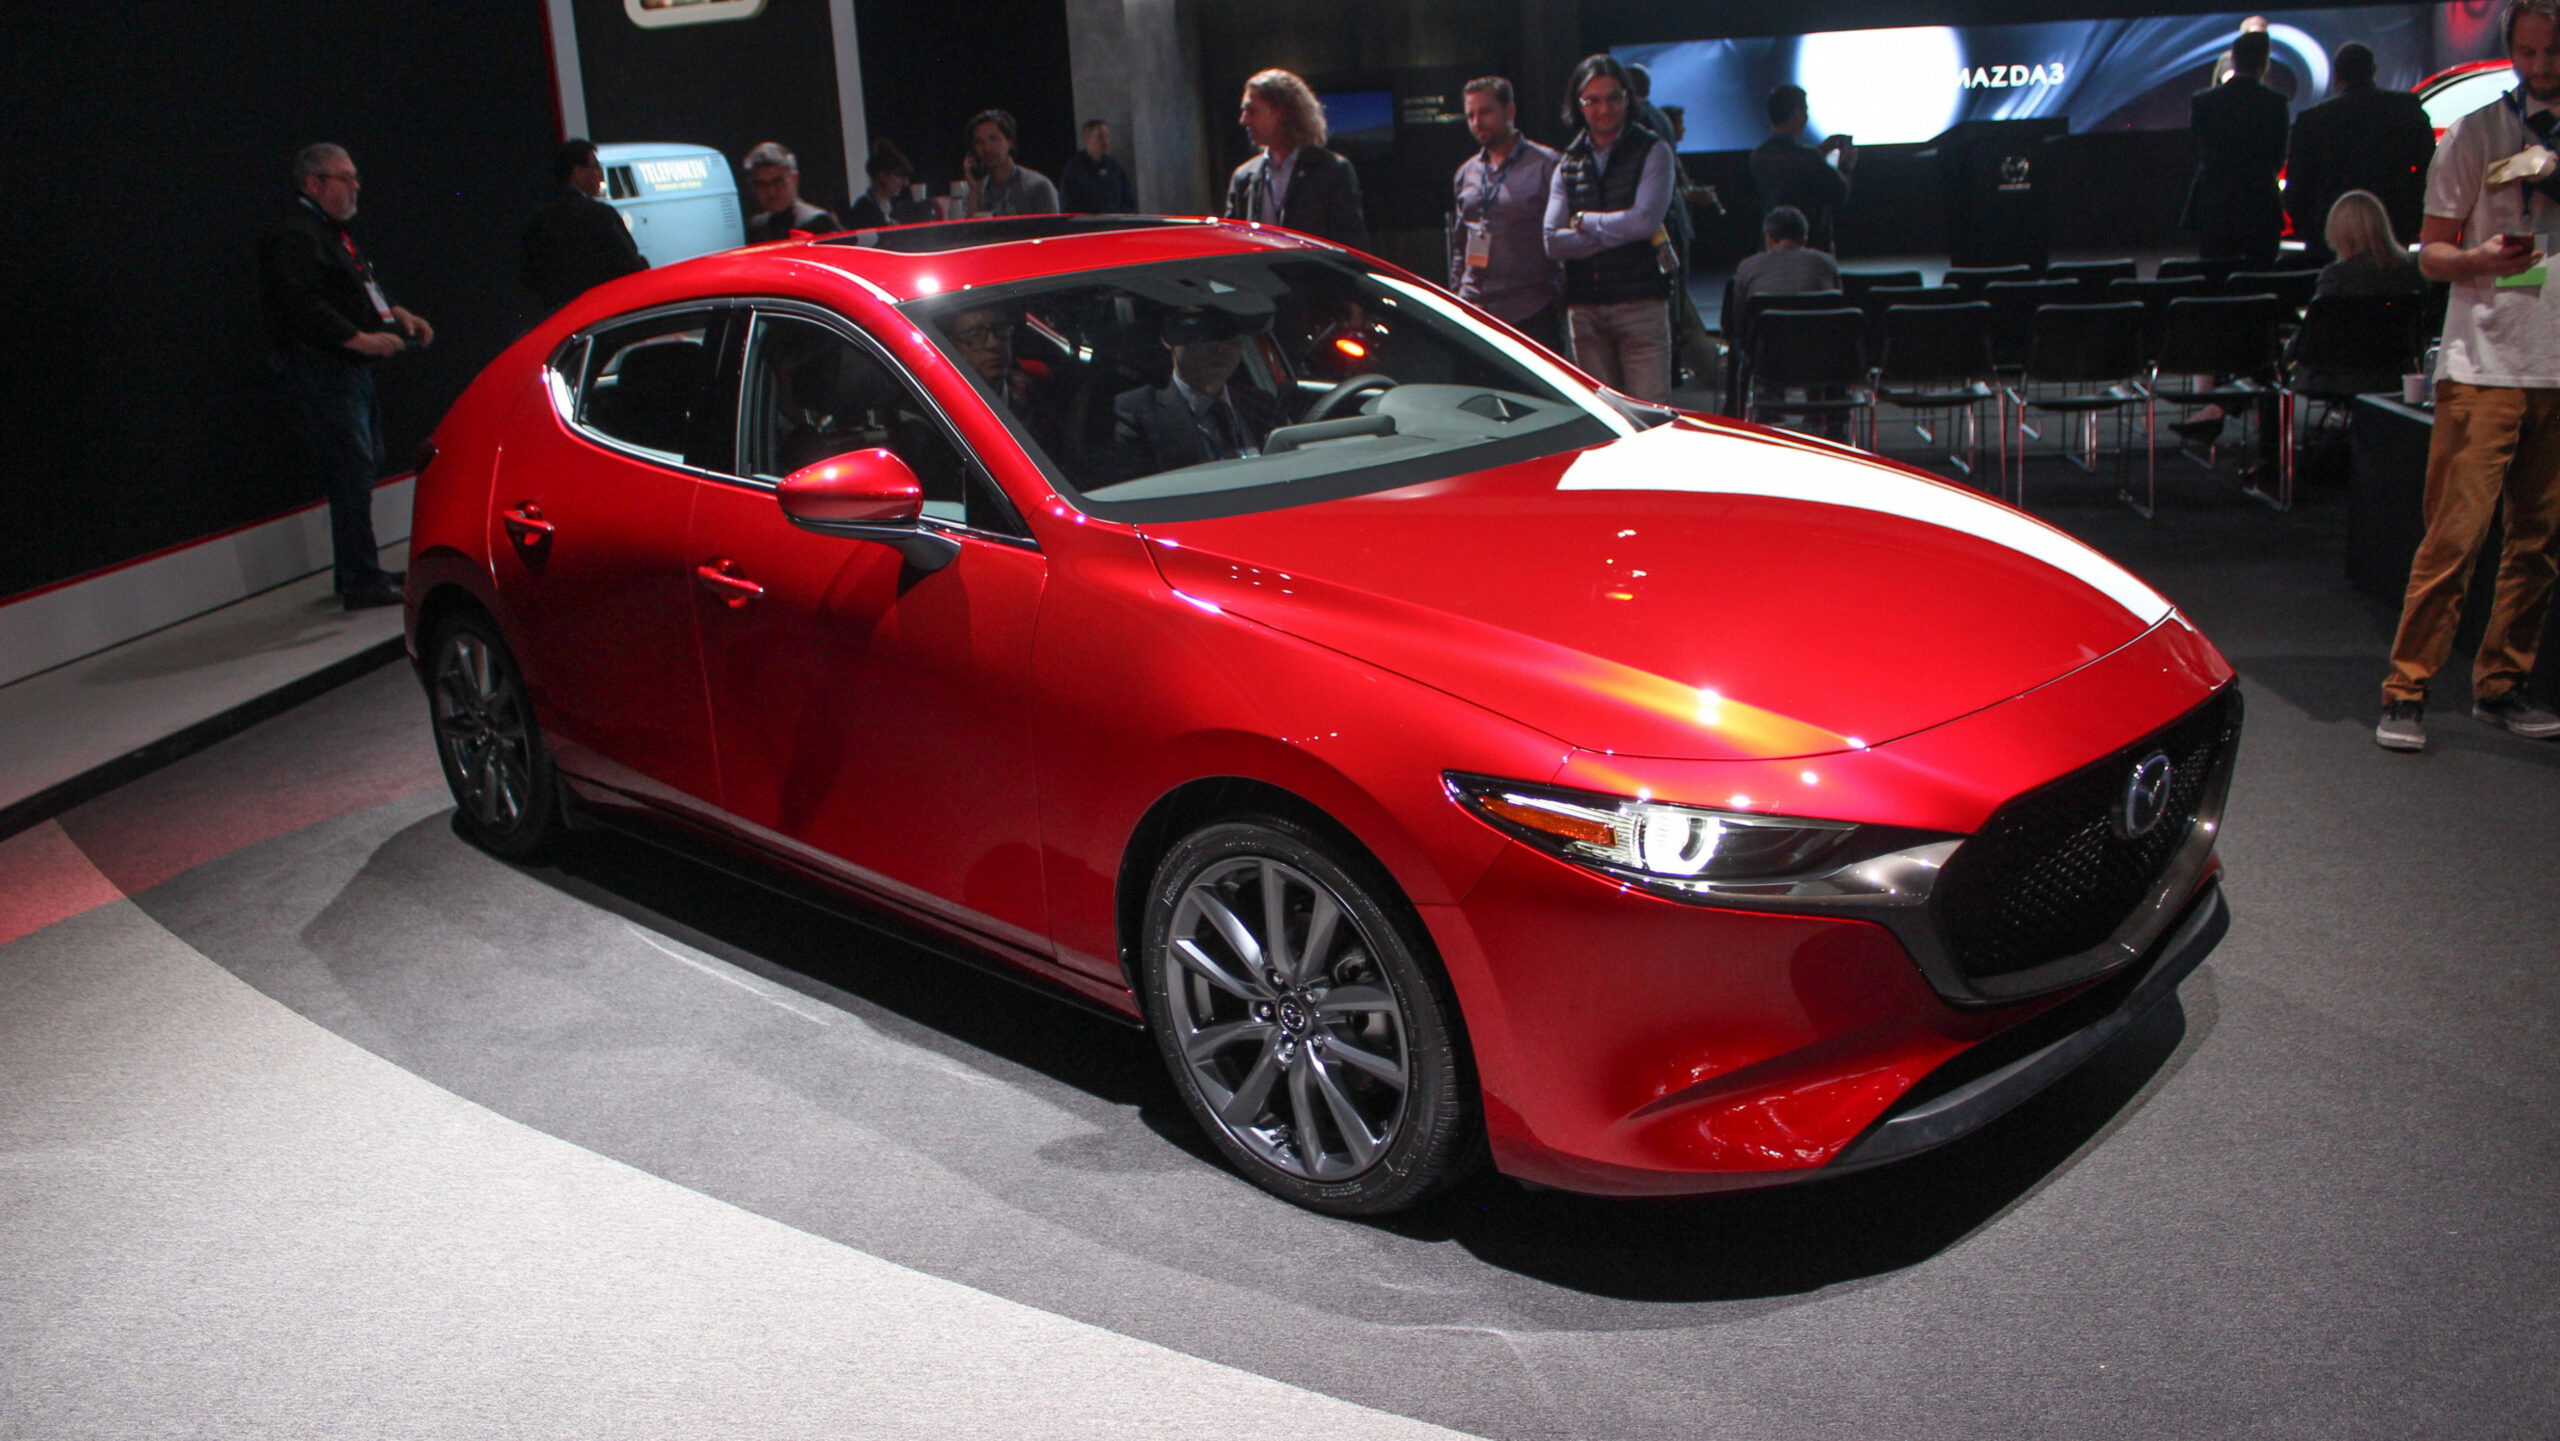 9 Mazda9 Premieres in LA with Concept Styling and AWD – WHEELS.ca